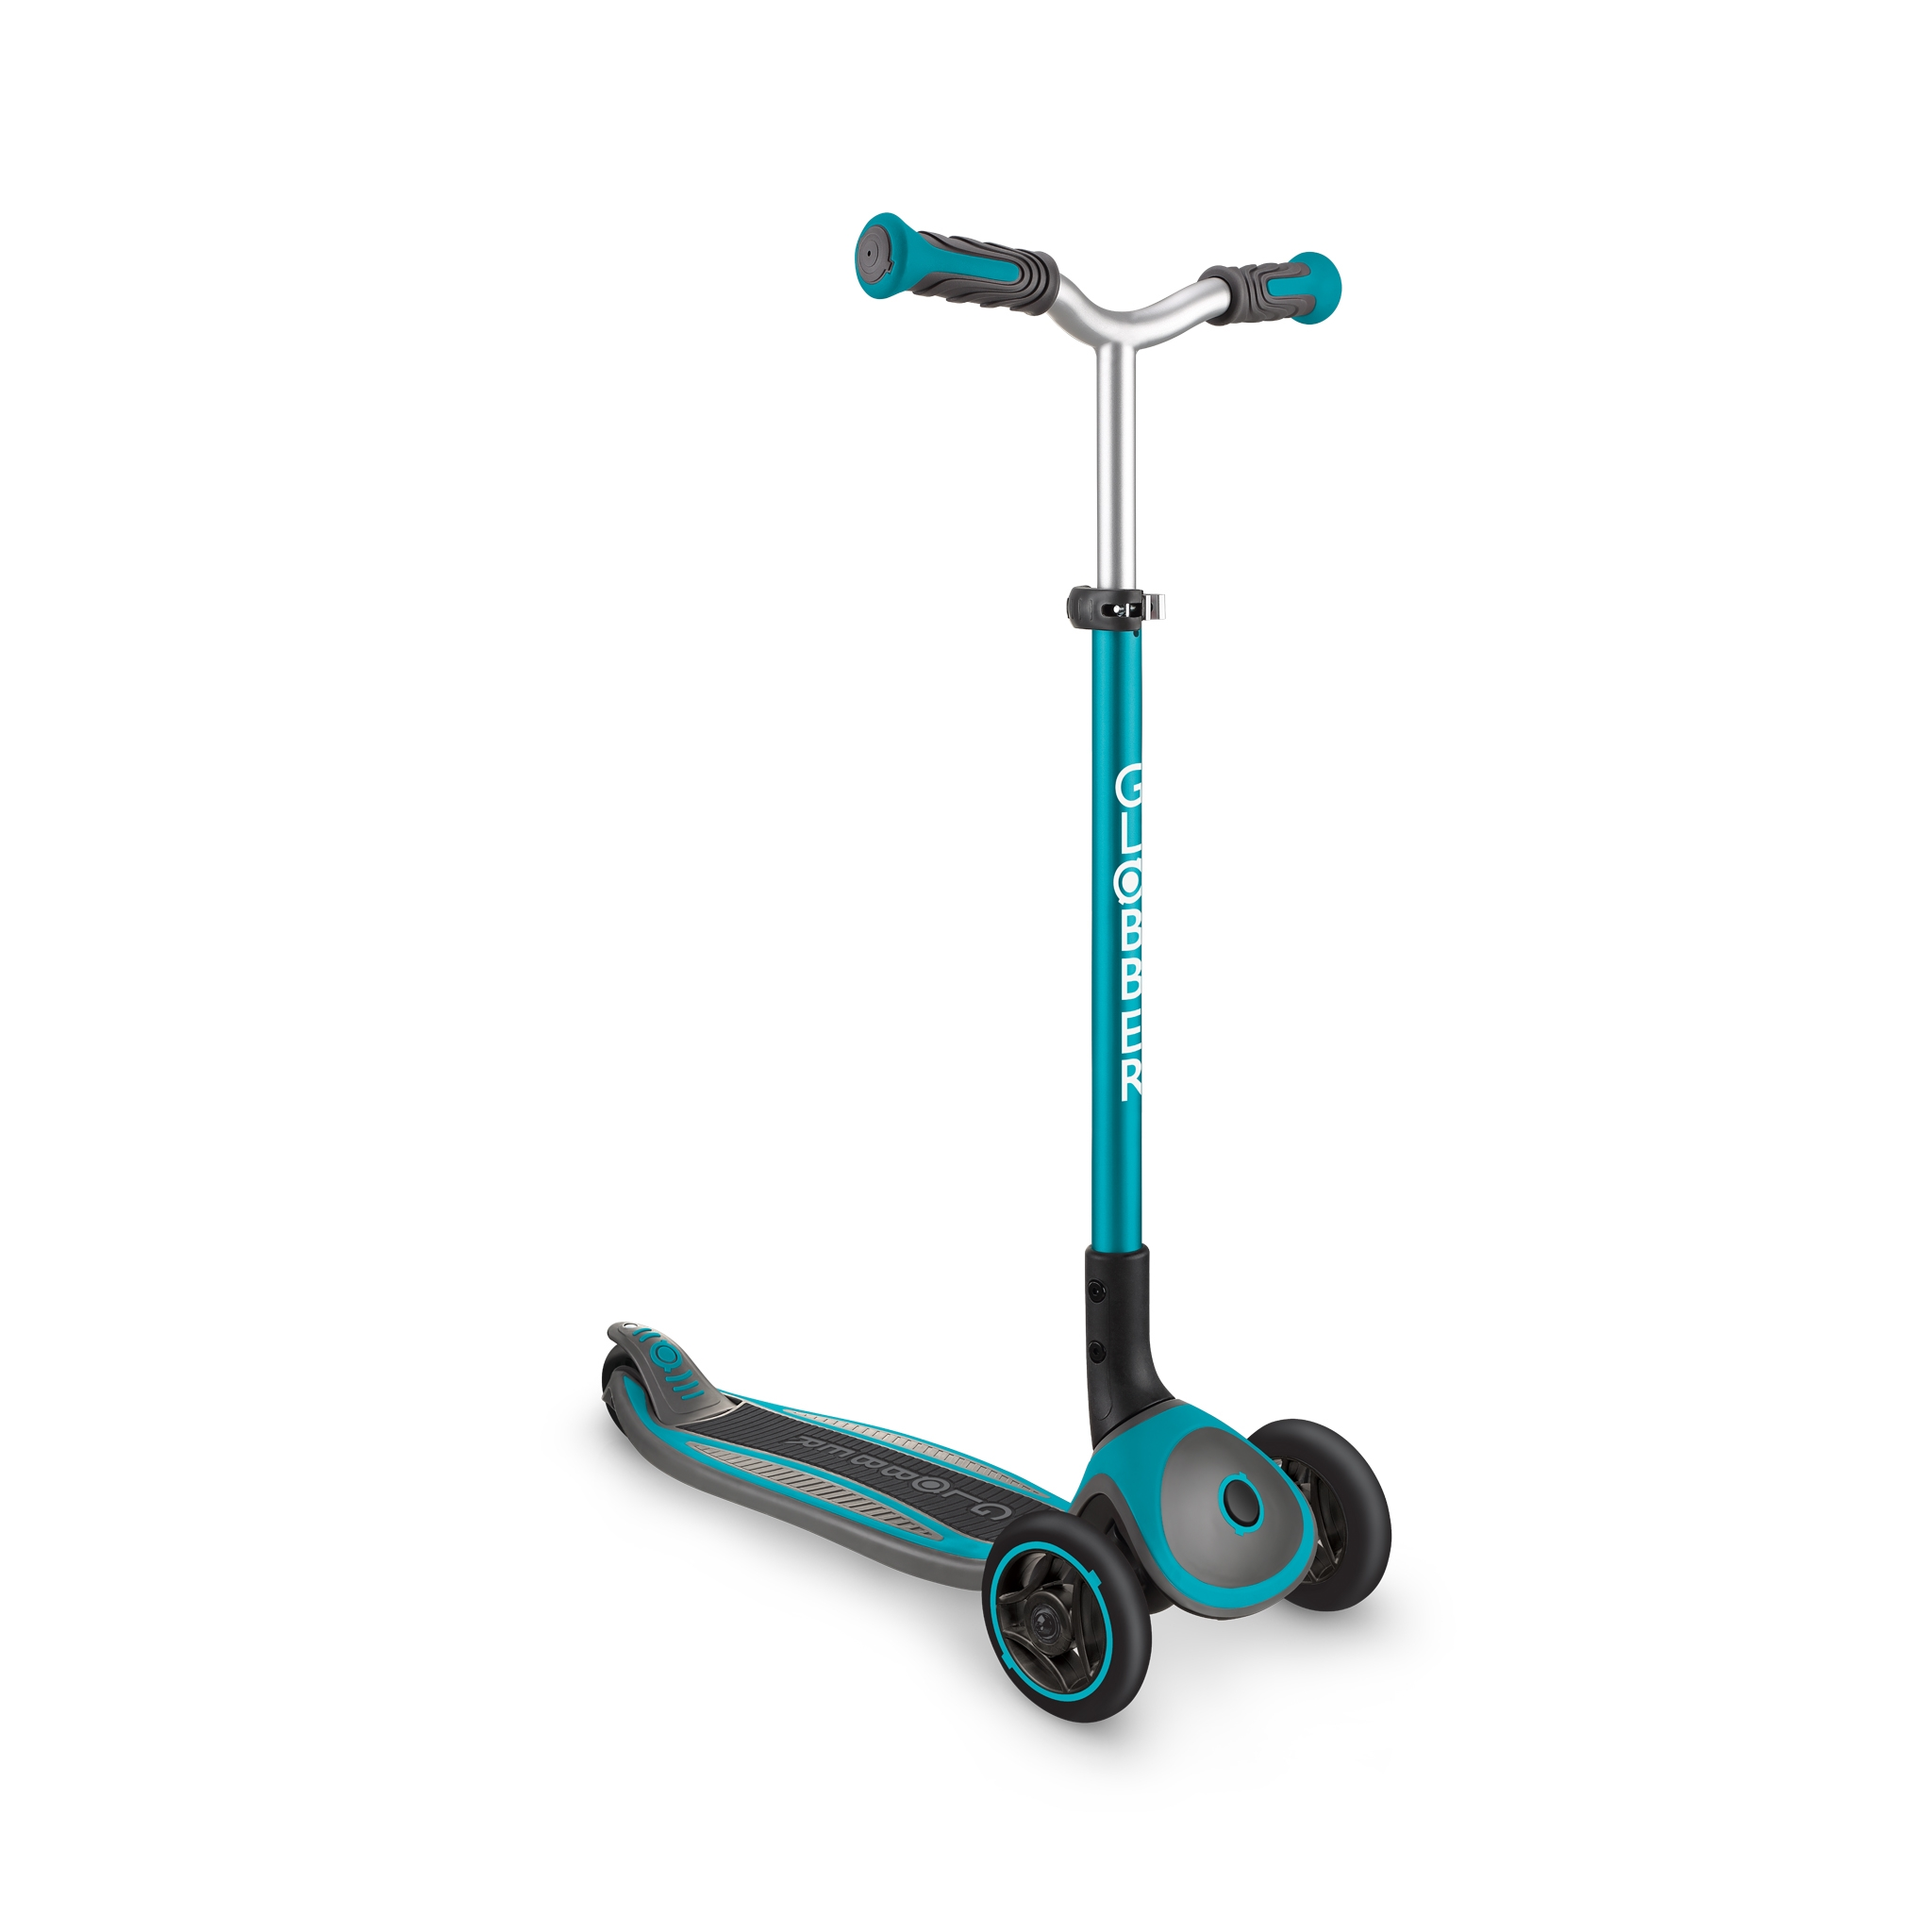 Globber-MASTER-premium-3-wheel-foldable-scooters-for-kids-aged-4-to-14_teal